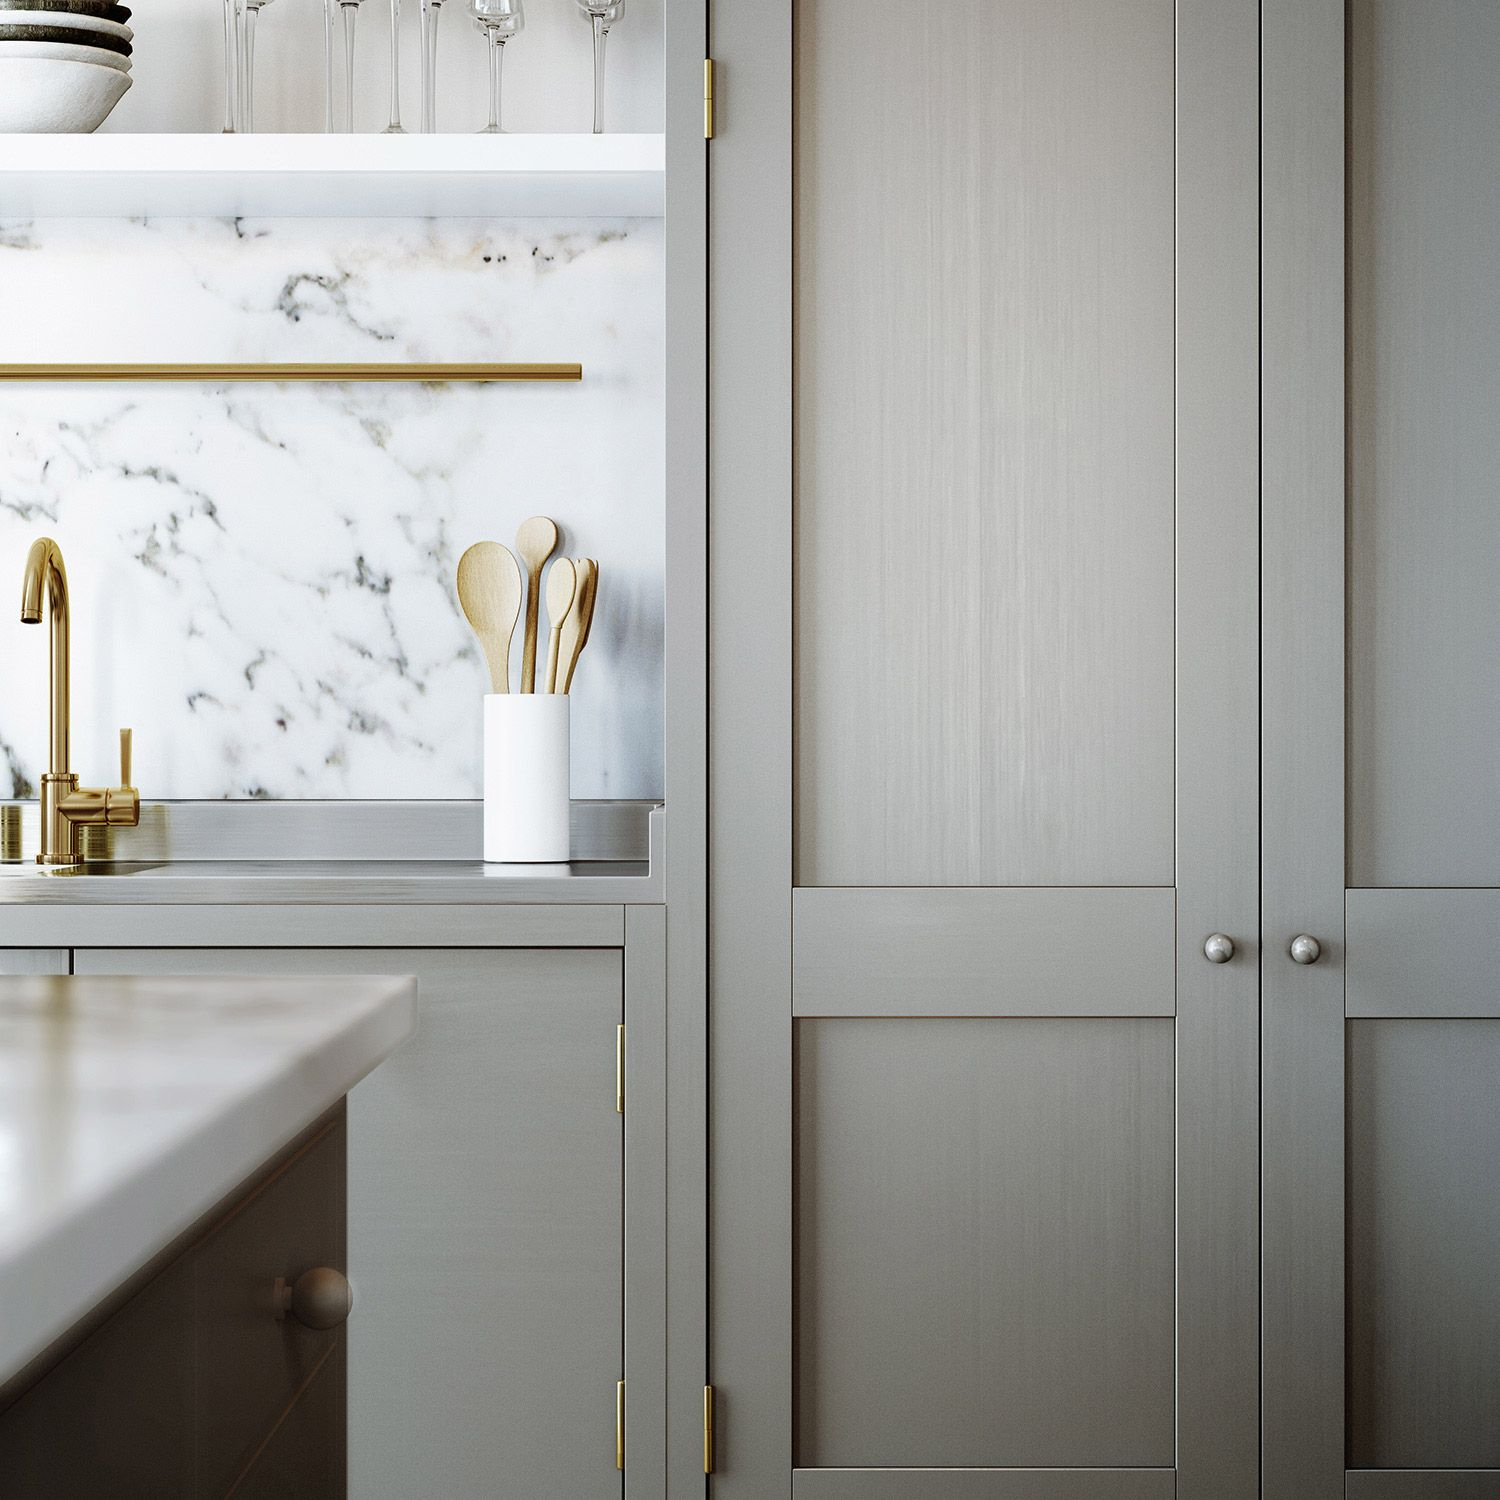 Details Shaker Style Cabinets With Carrara Accents